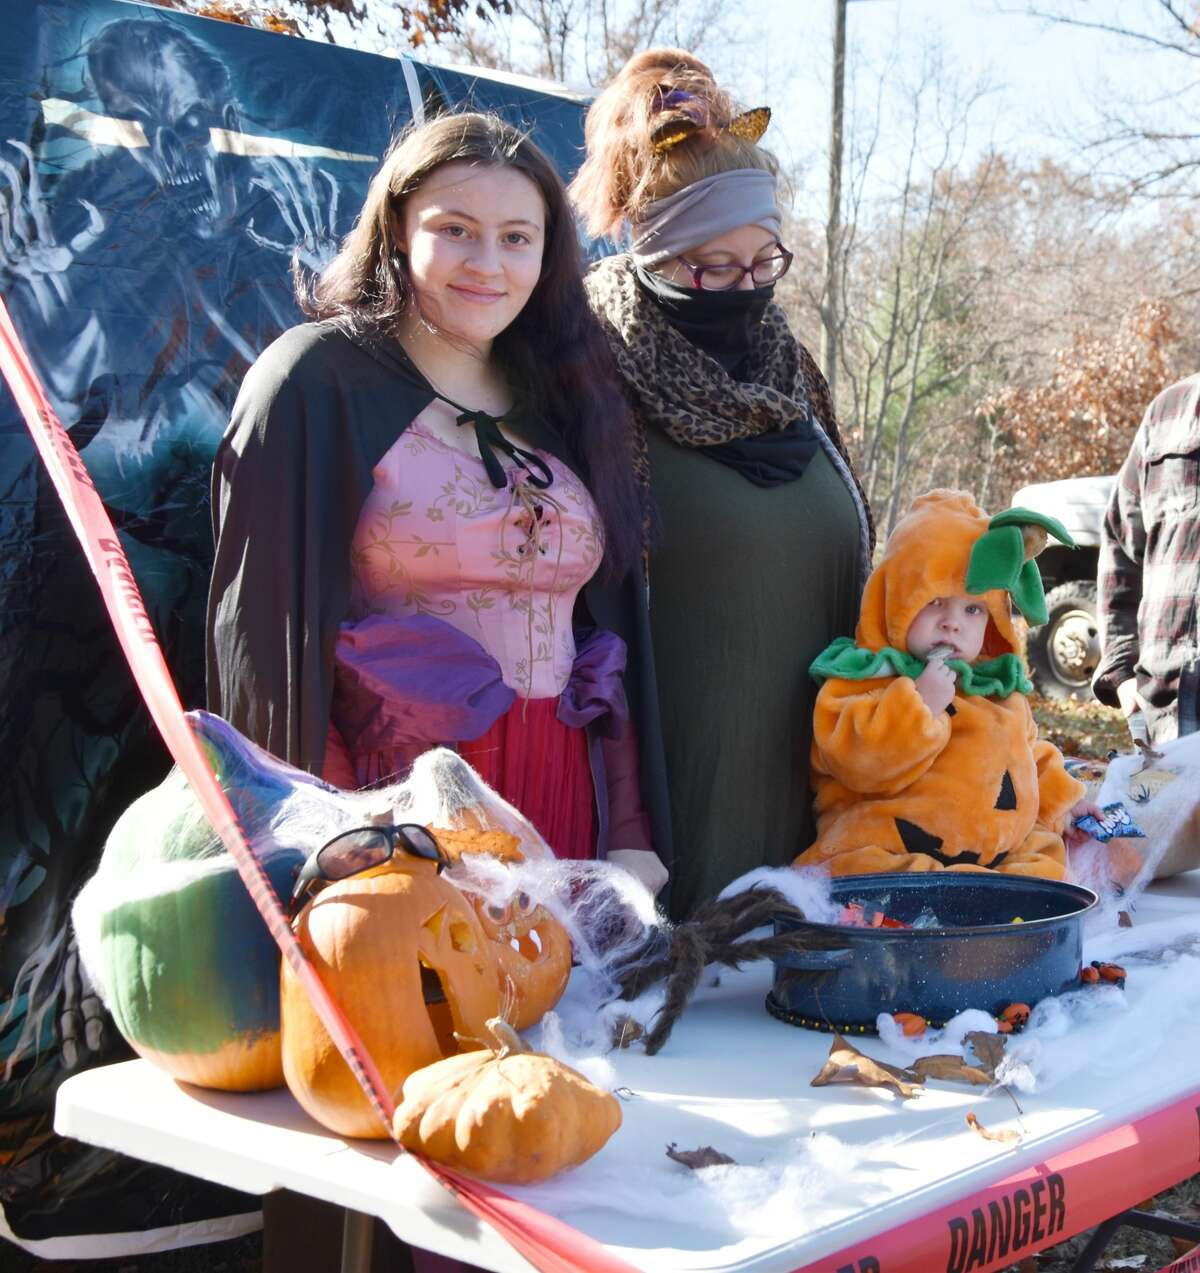 (From left) Harmony Silvey, Lindsay Riker and the 1-year-old Lincoln Pruett were donning costumes and jamming to Rob Zombie's